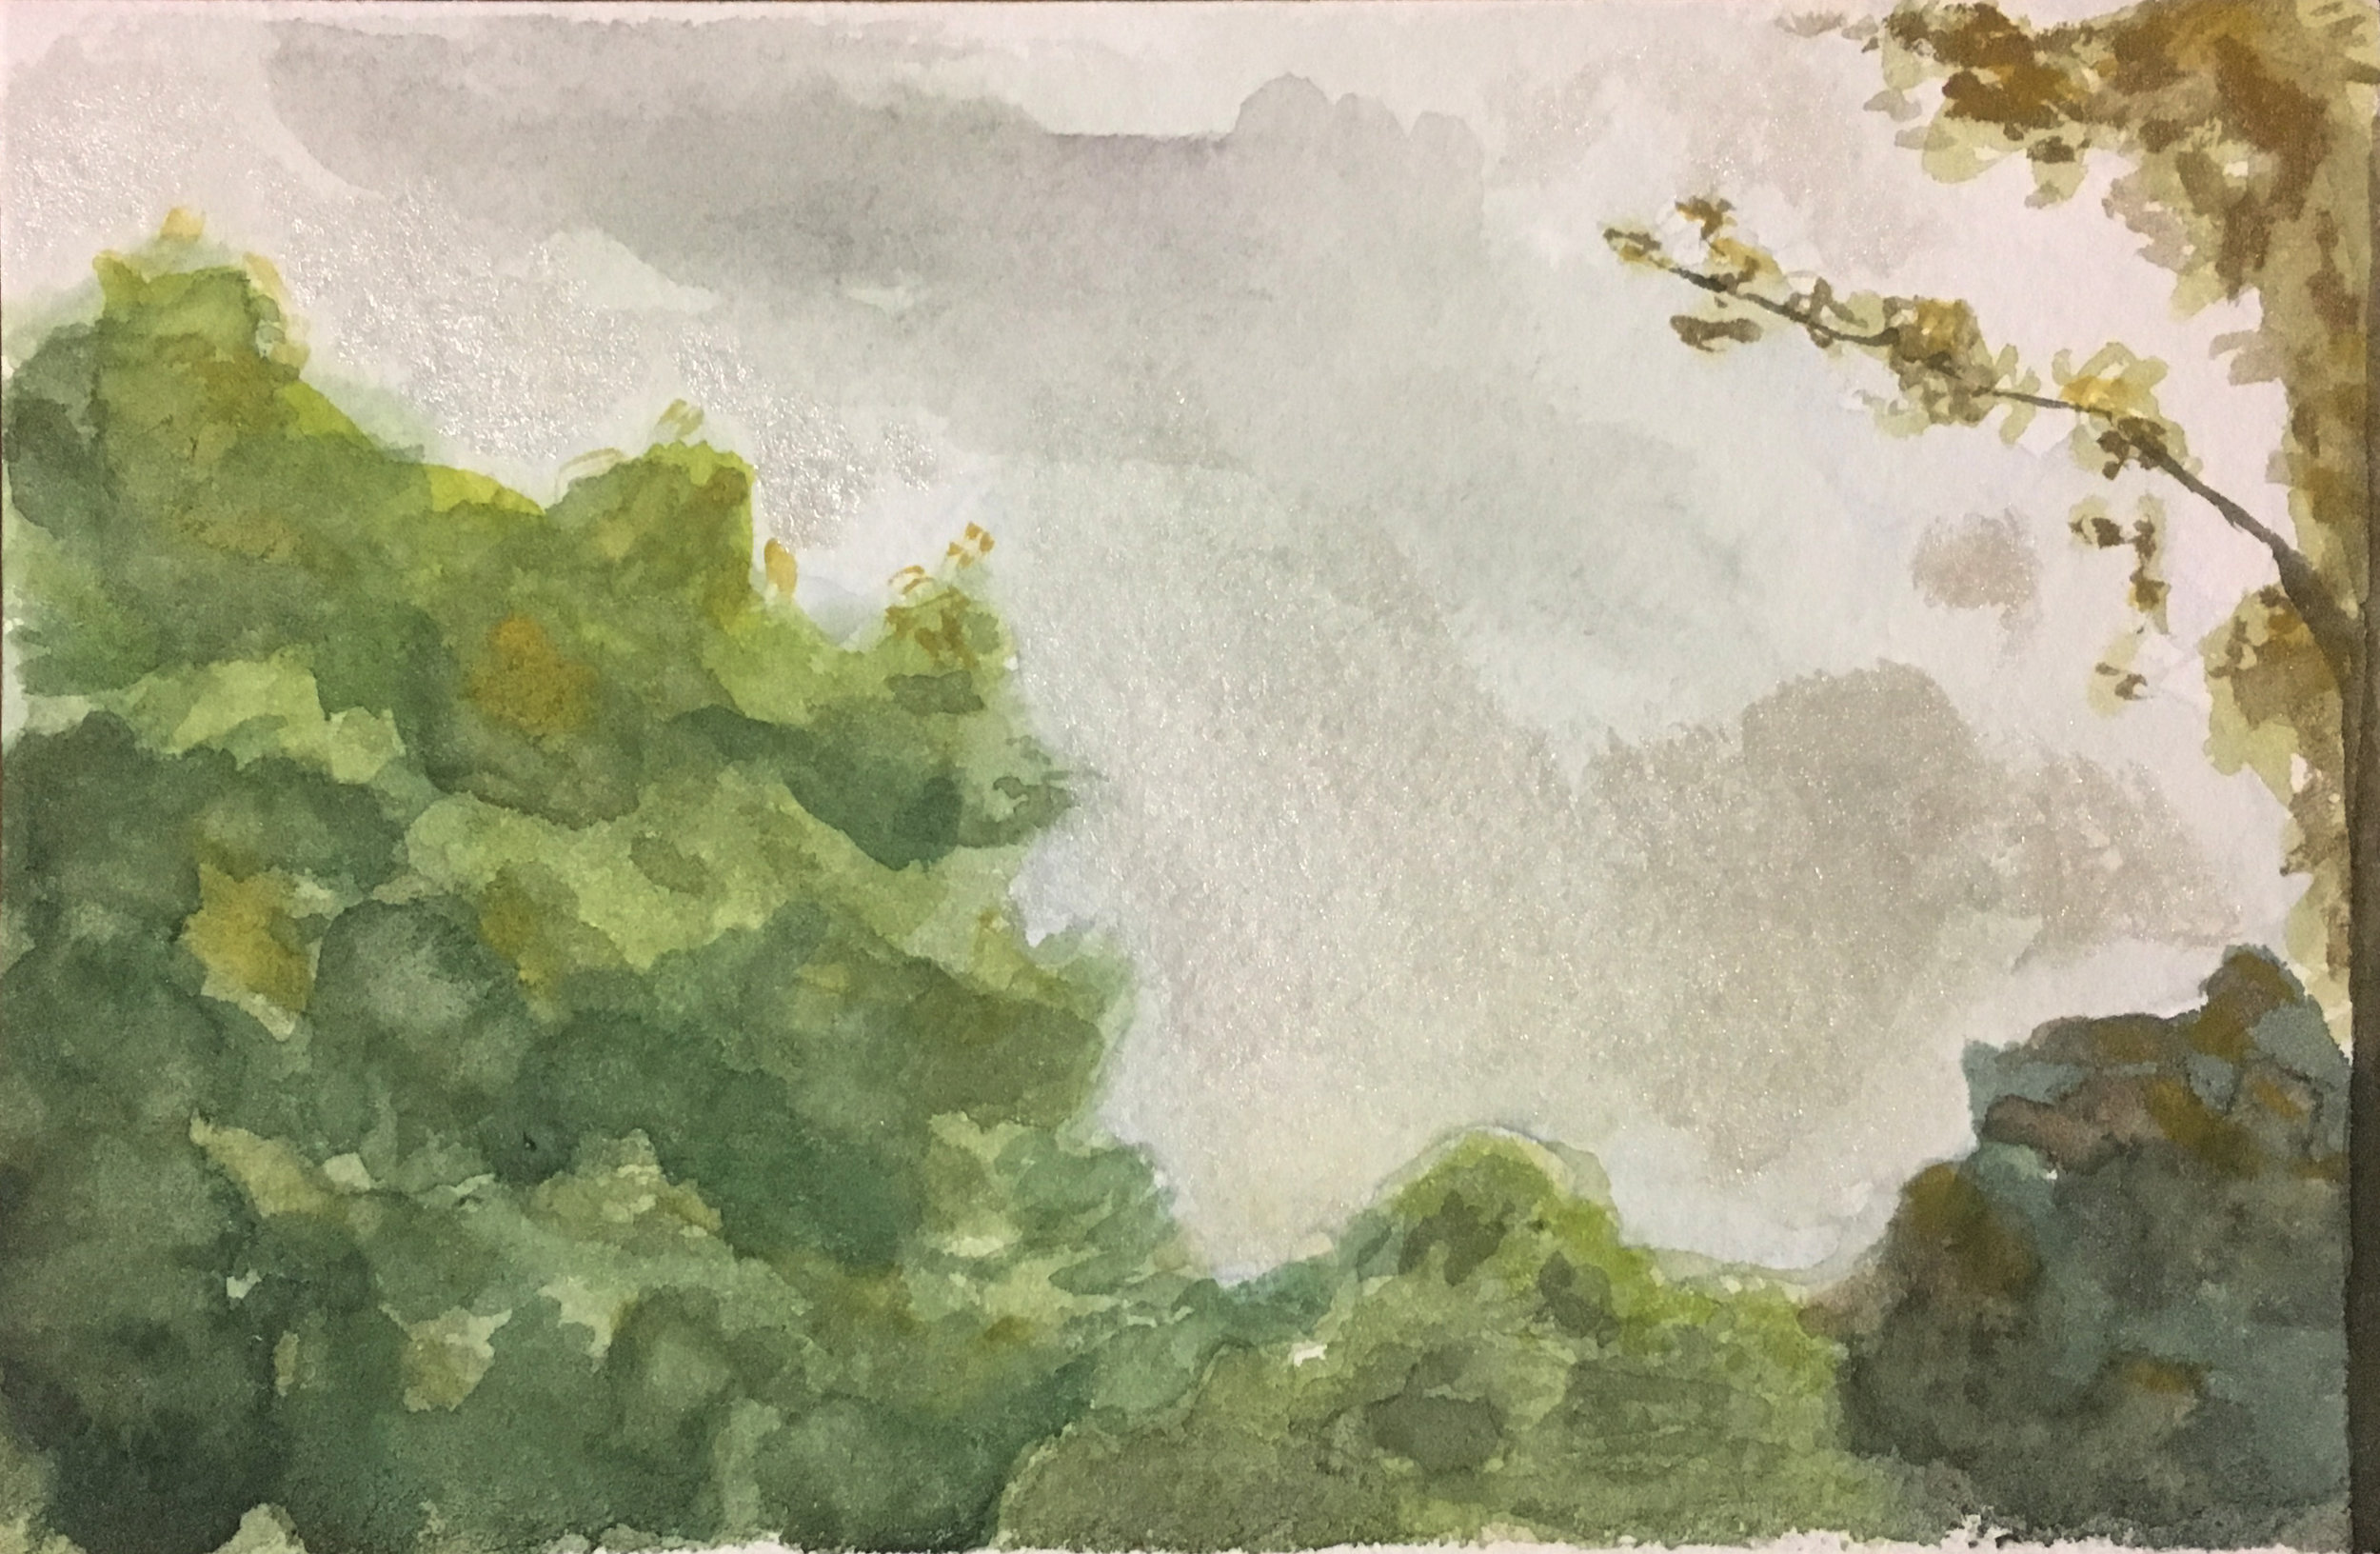 Plein air watercolor, Sewanee, TN (2019)